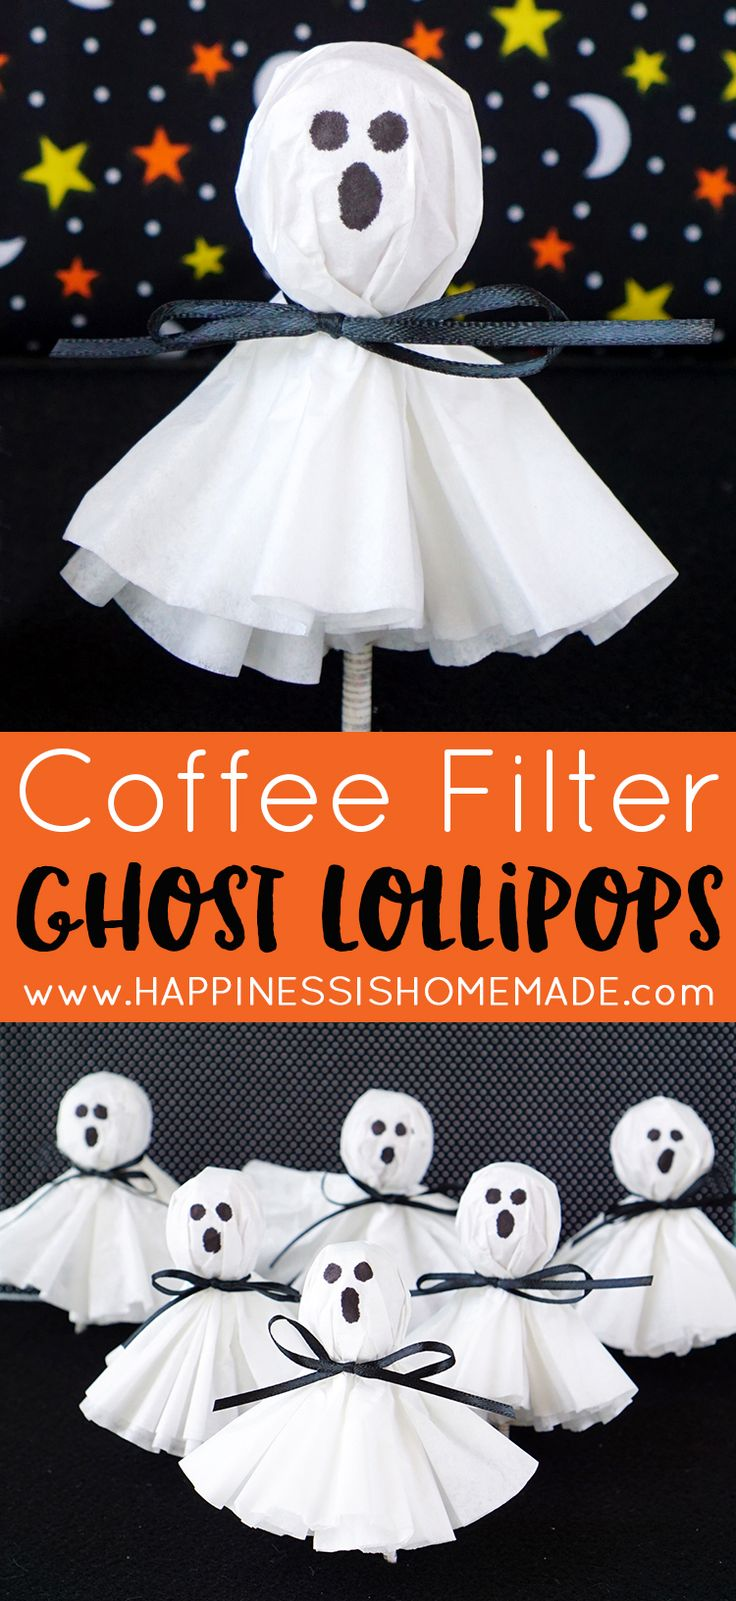 Uncategorized Decoration For Halloween Ideas best 25 halloween crafts ideas on pinterest kids these coffee filter ghost lollipops are a cute and easy twist classic kleenex tissue ghosts nostalgic fun treat t